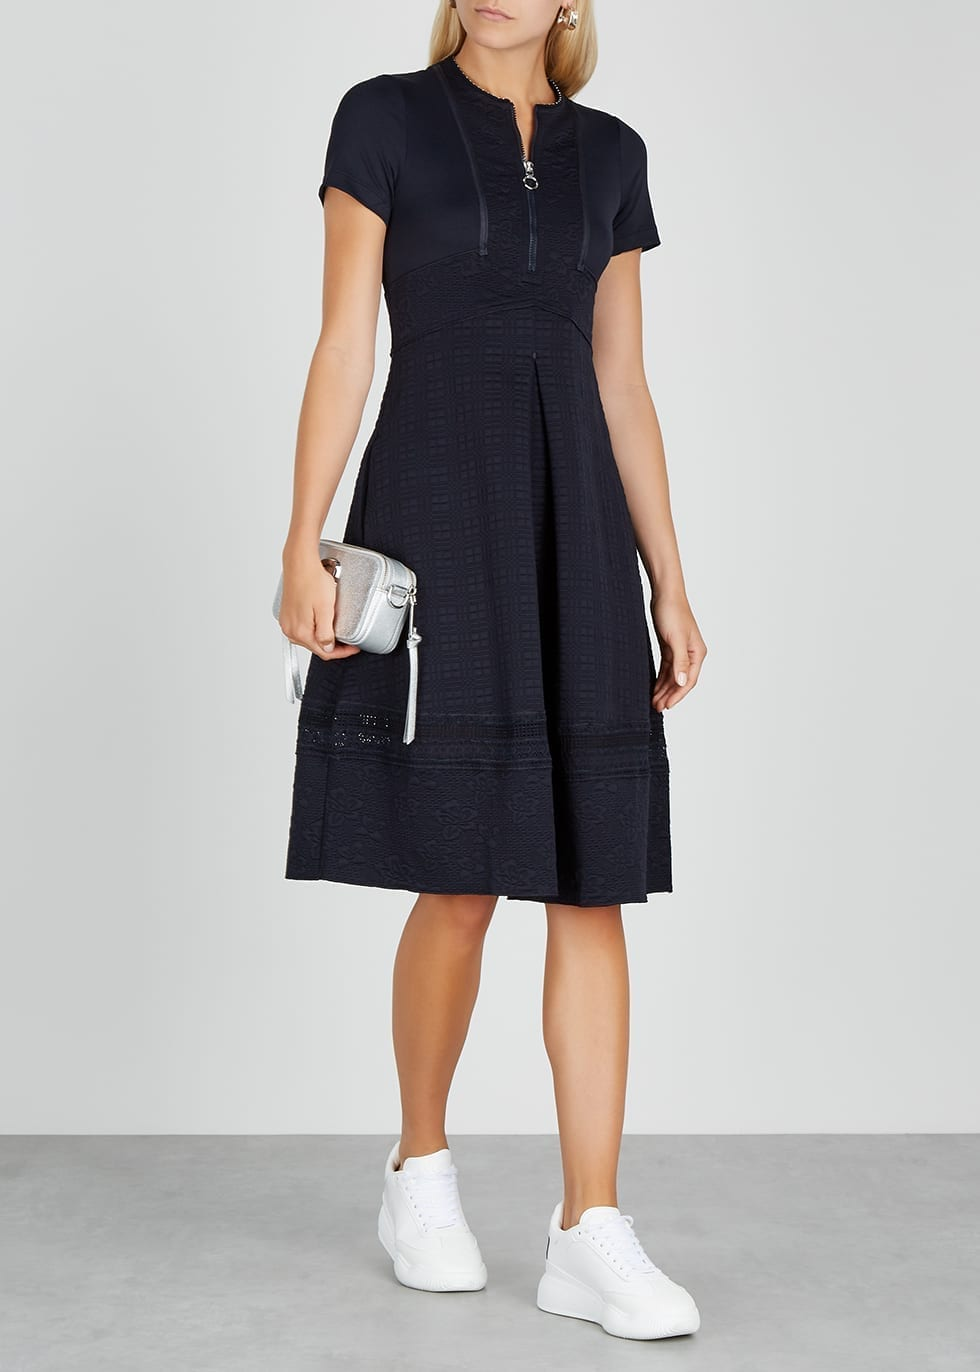 HIGH Adorable Navy Stretch-jersey Midi Dress